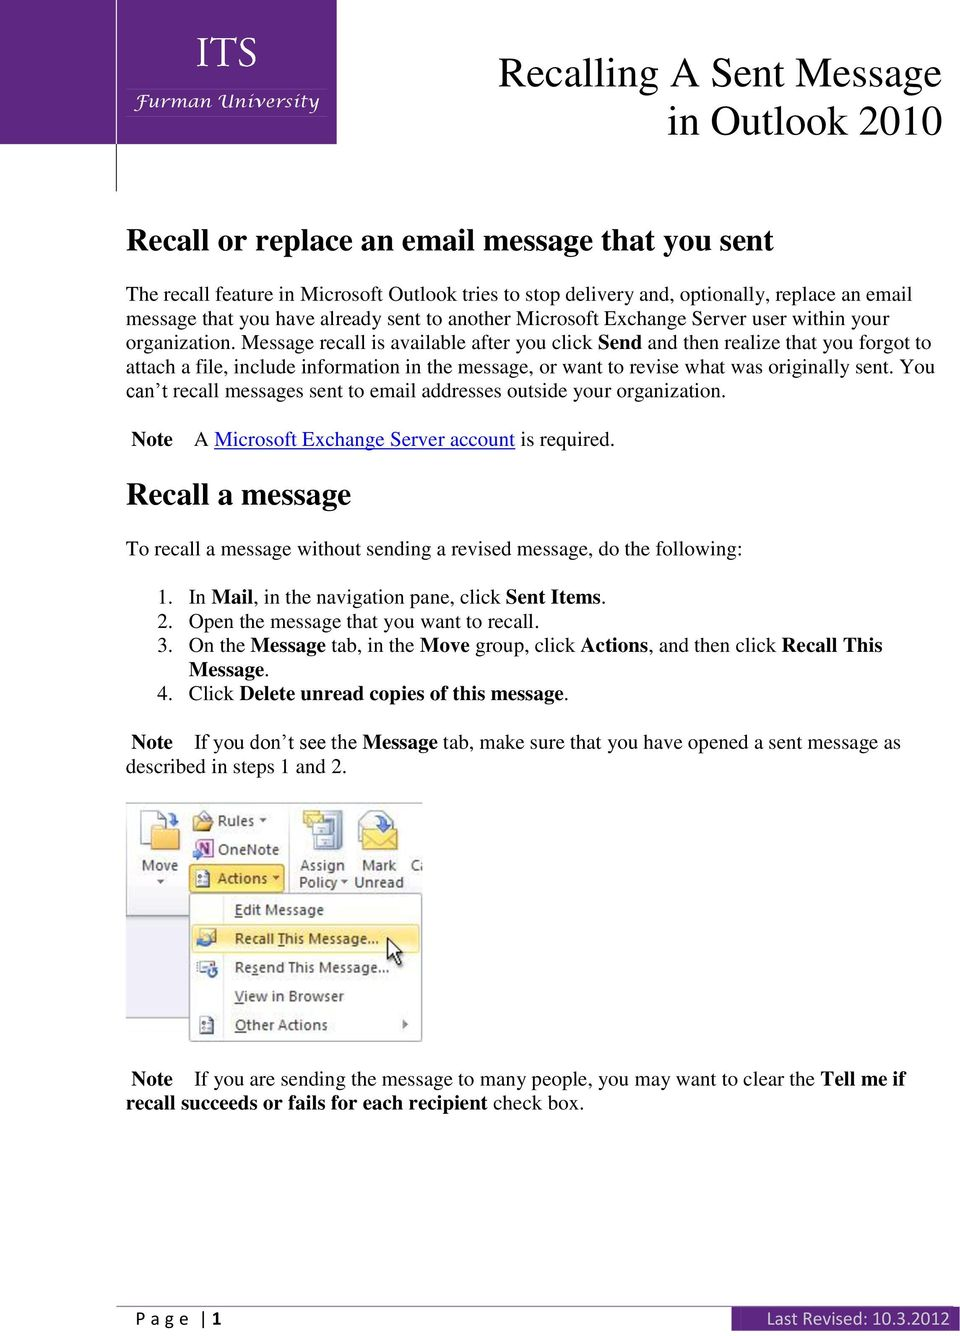 Message recall is available after you click Send and then realize that you forgot to attach a file, include information in the message, or want to revise what was originally sent.